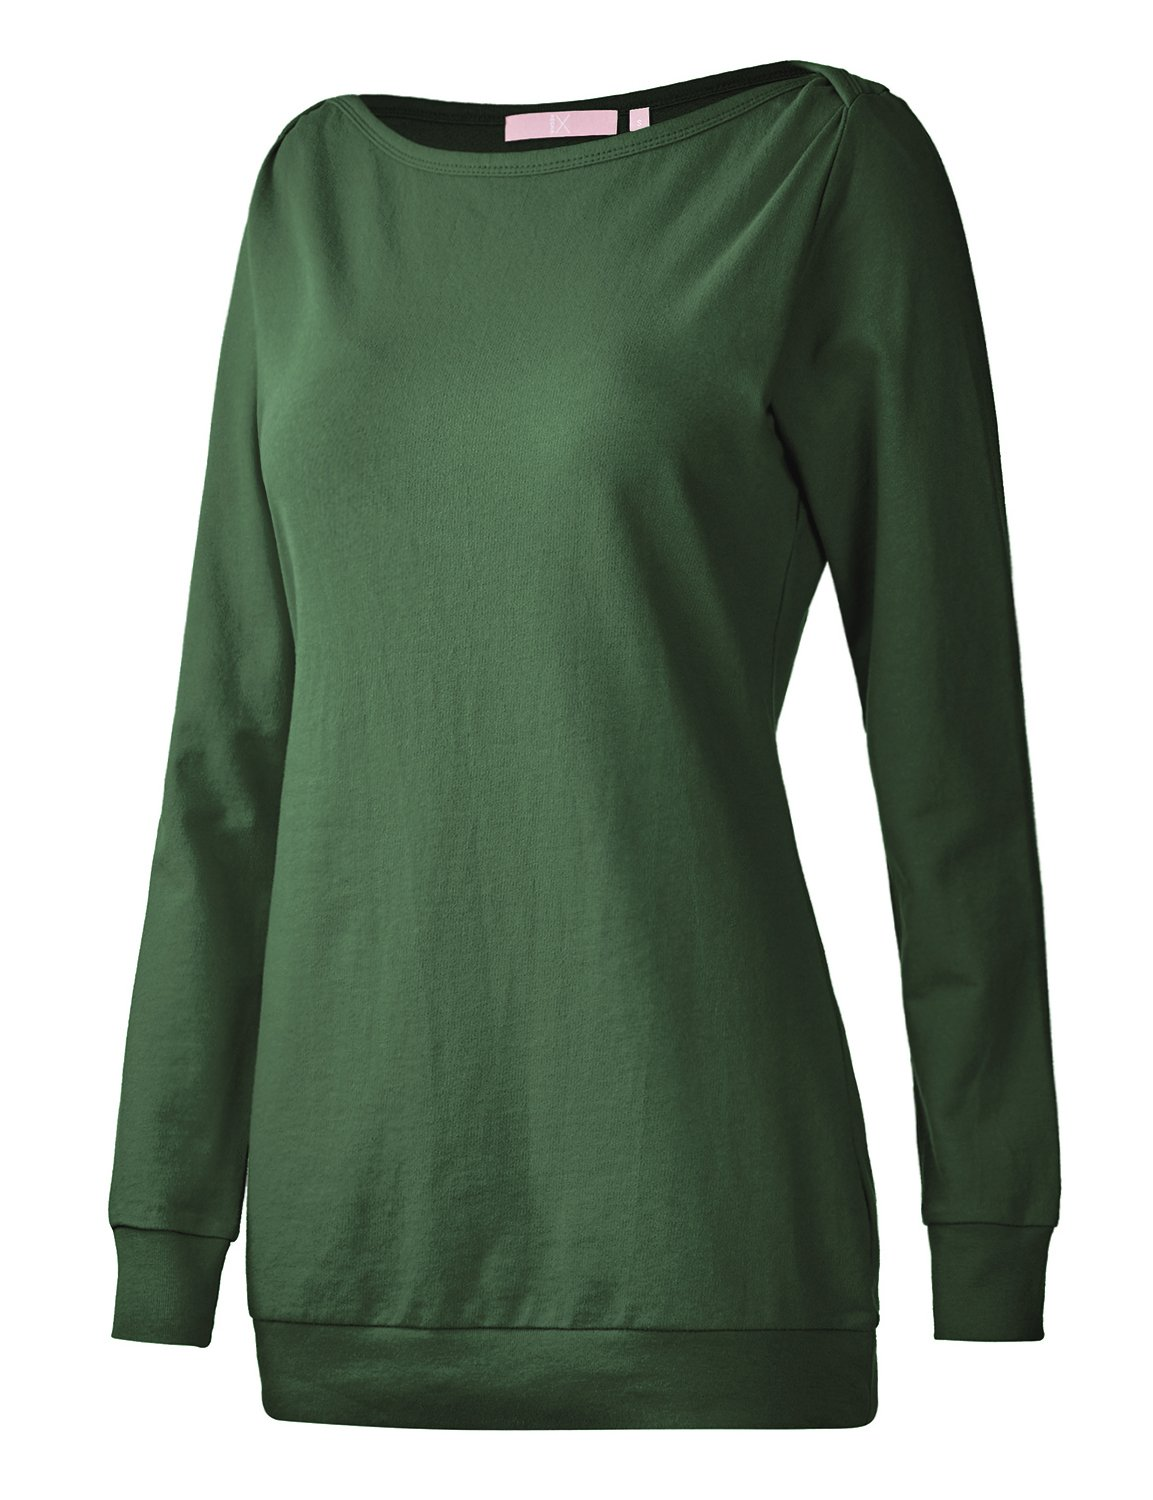 Regna X Boho for Womans Activewear Comfy Tunics Green 2XL Plus Size Big Boatneck Long Pullover Sweatshirts